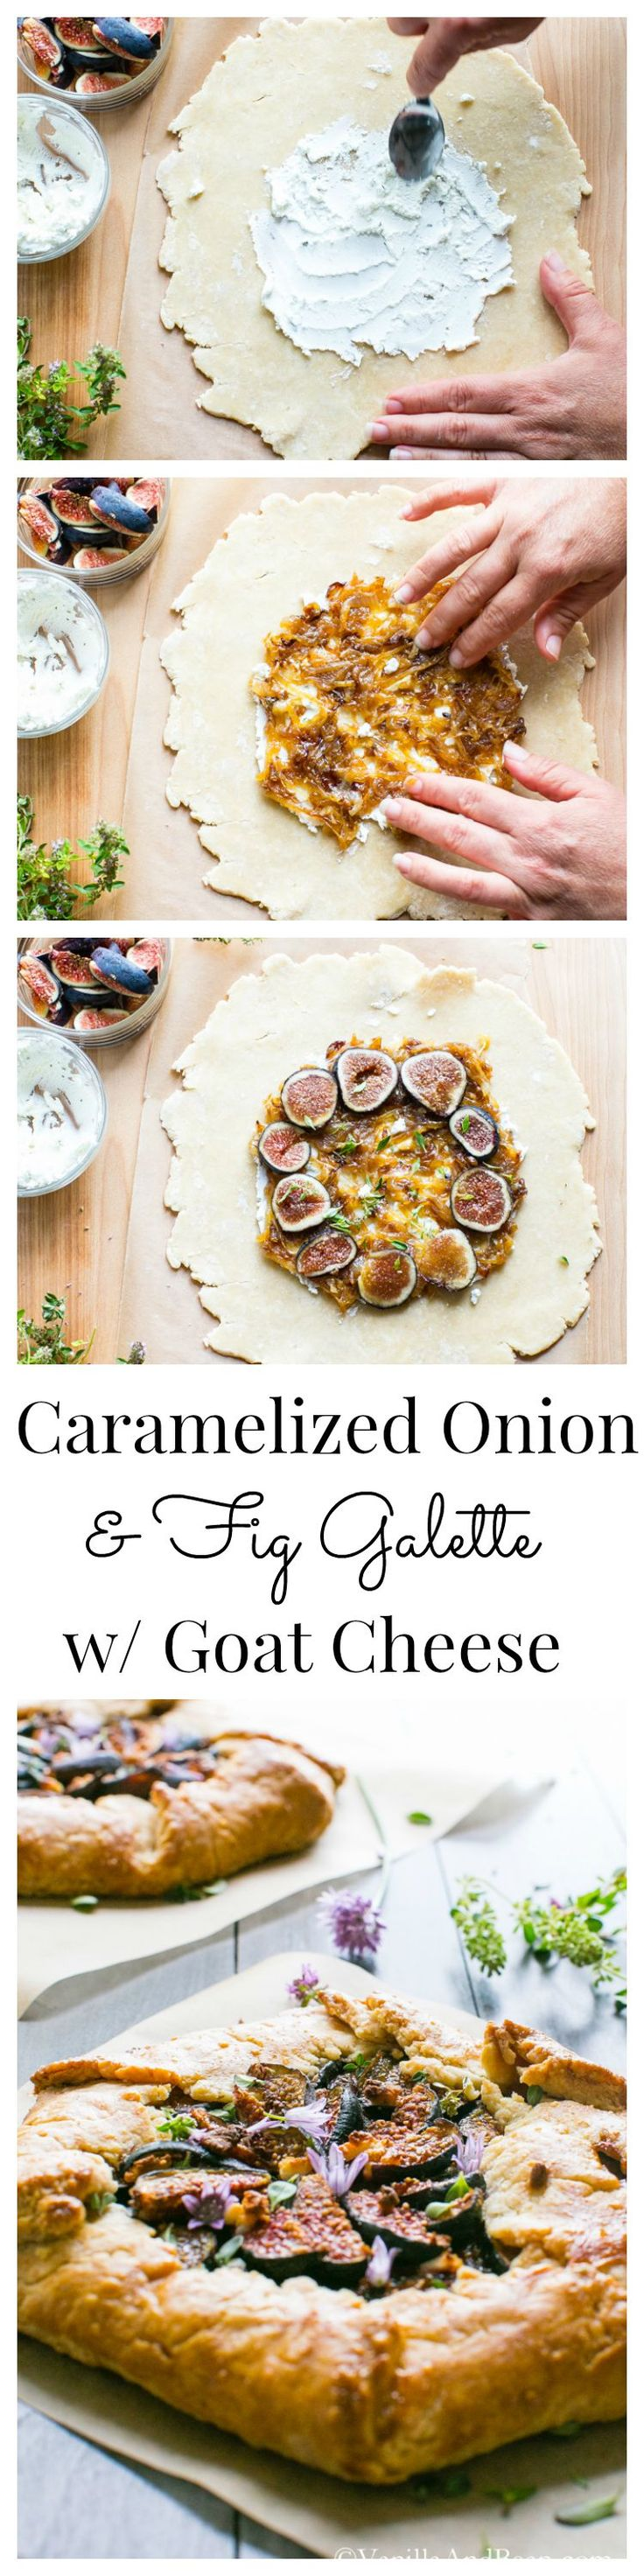 A rustic, savory tart served as an appetizer or main; Caramelized Onion and Fig Galette with Goat Cheese and Herbs | Vanilla And Bean